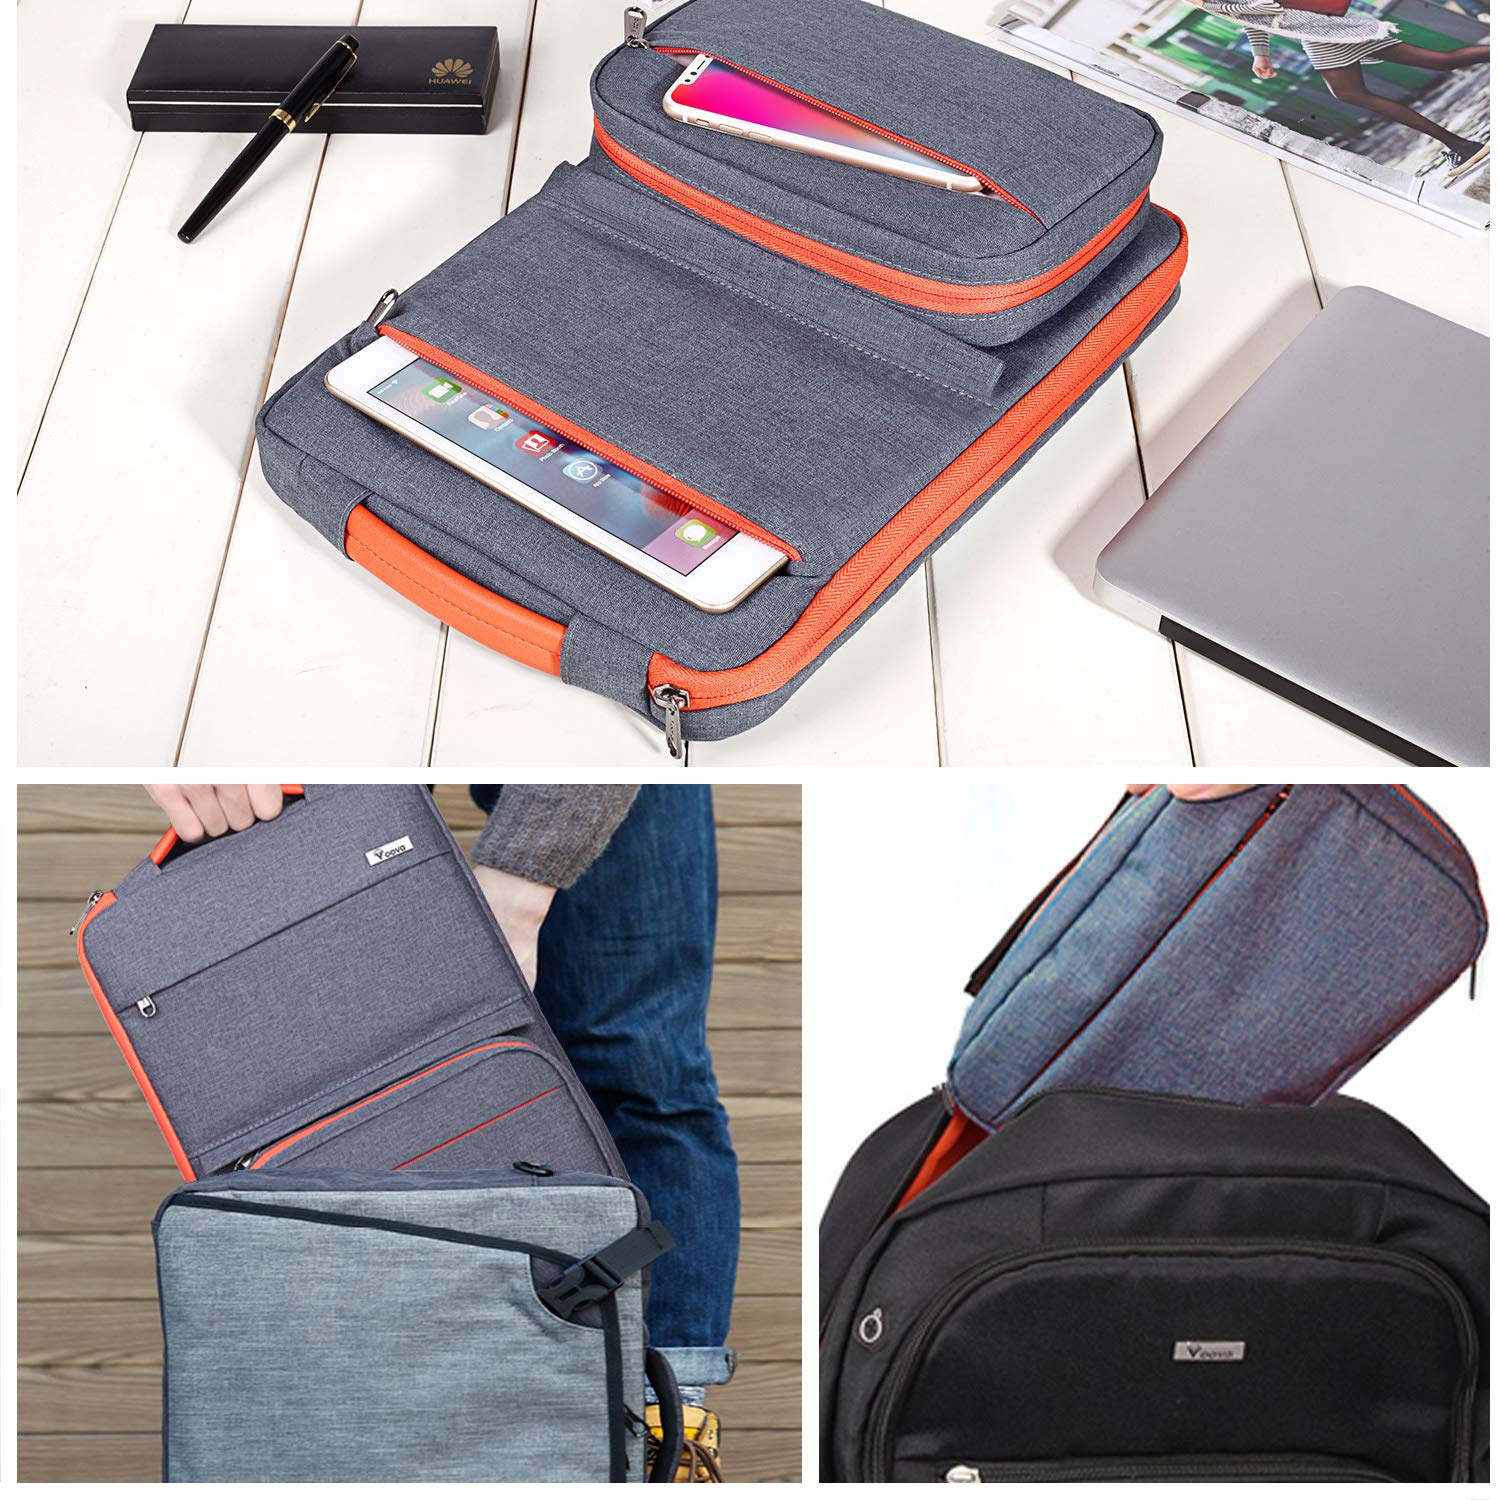 Voova 14-15.6 Inch Laptop Sleeve Bag Cover Special Design Waterproof Computer Protective Carry Case with Detachable Accessory Pocket Compatible with MacBook Pro Retina 15'', HP, Asus, Acer, Dark Gray by  Voova (Image #7)